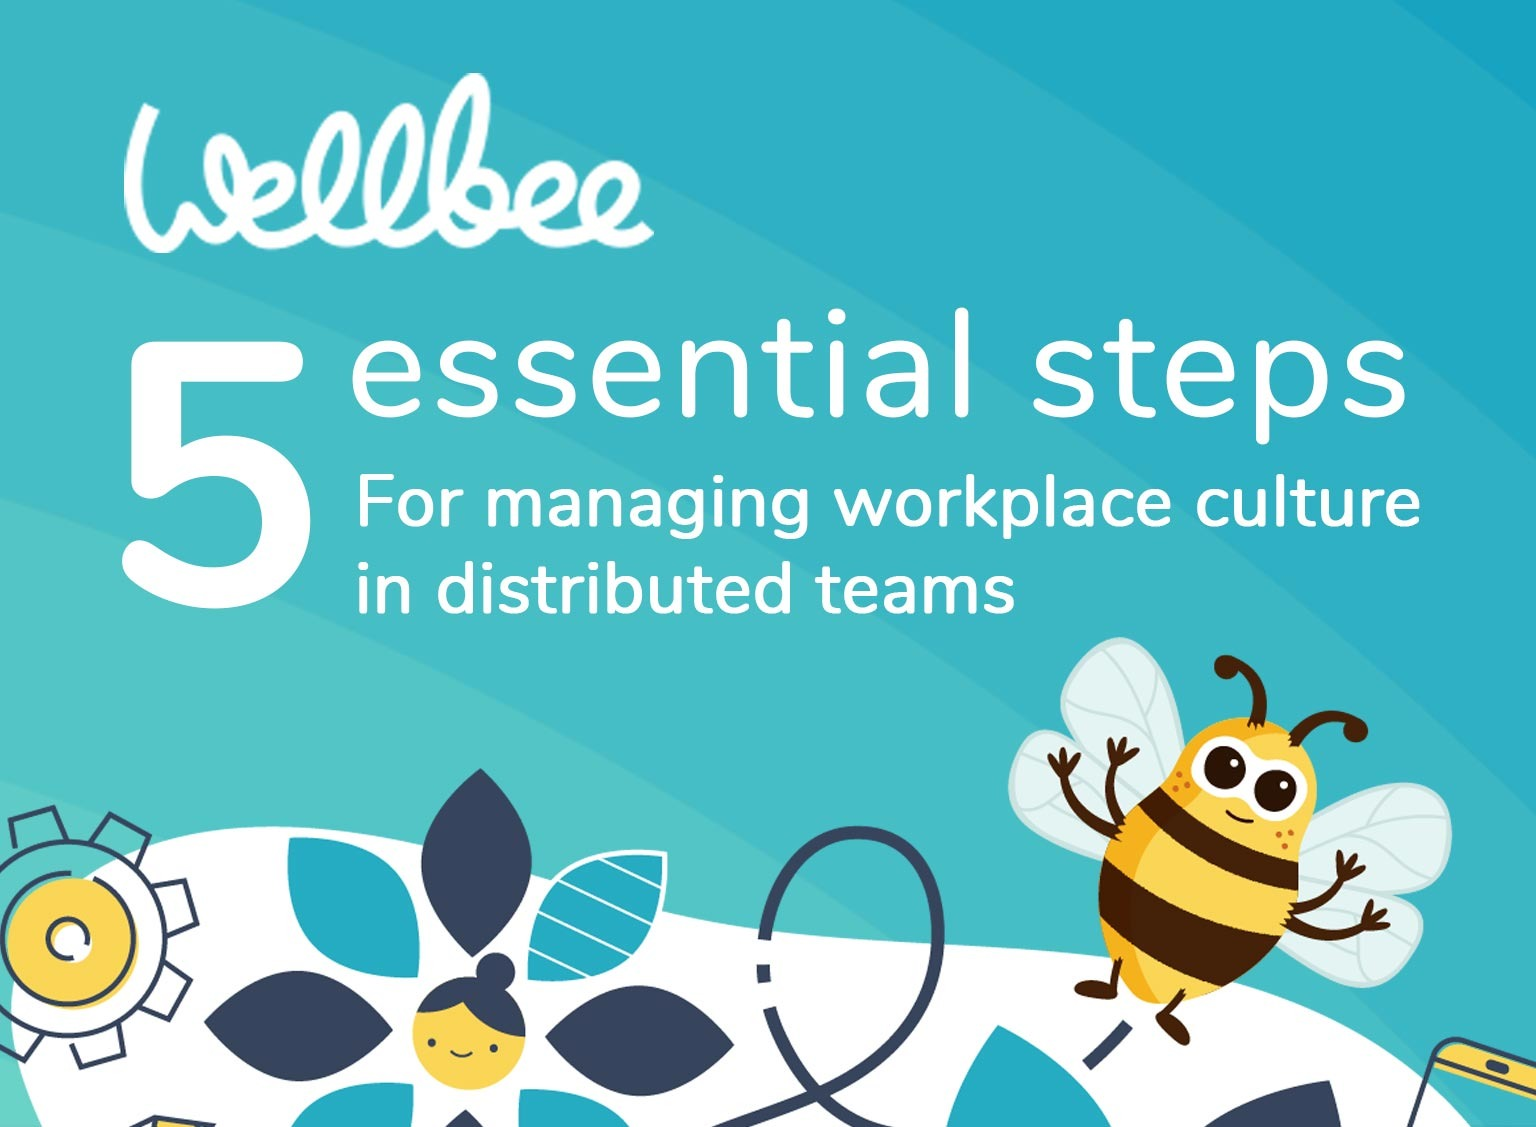 Five Essential Steps for Managing Workplace Culture in Distributed Teams